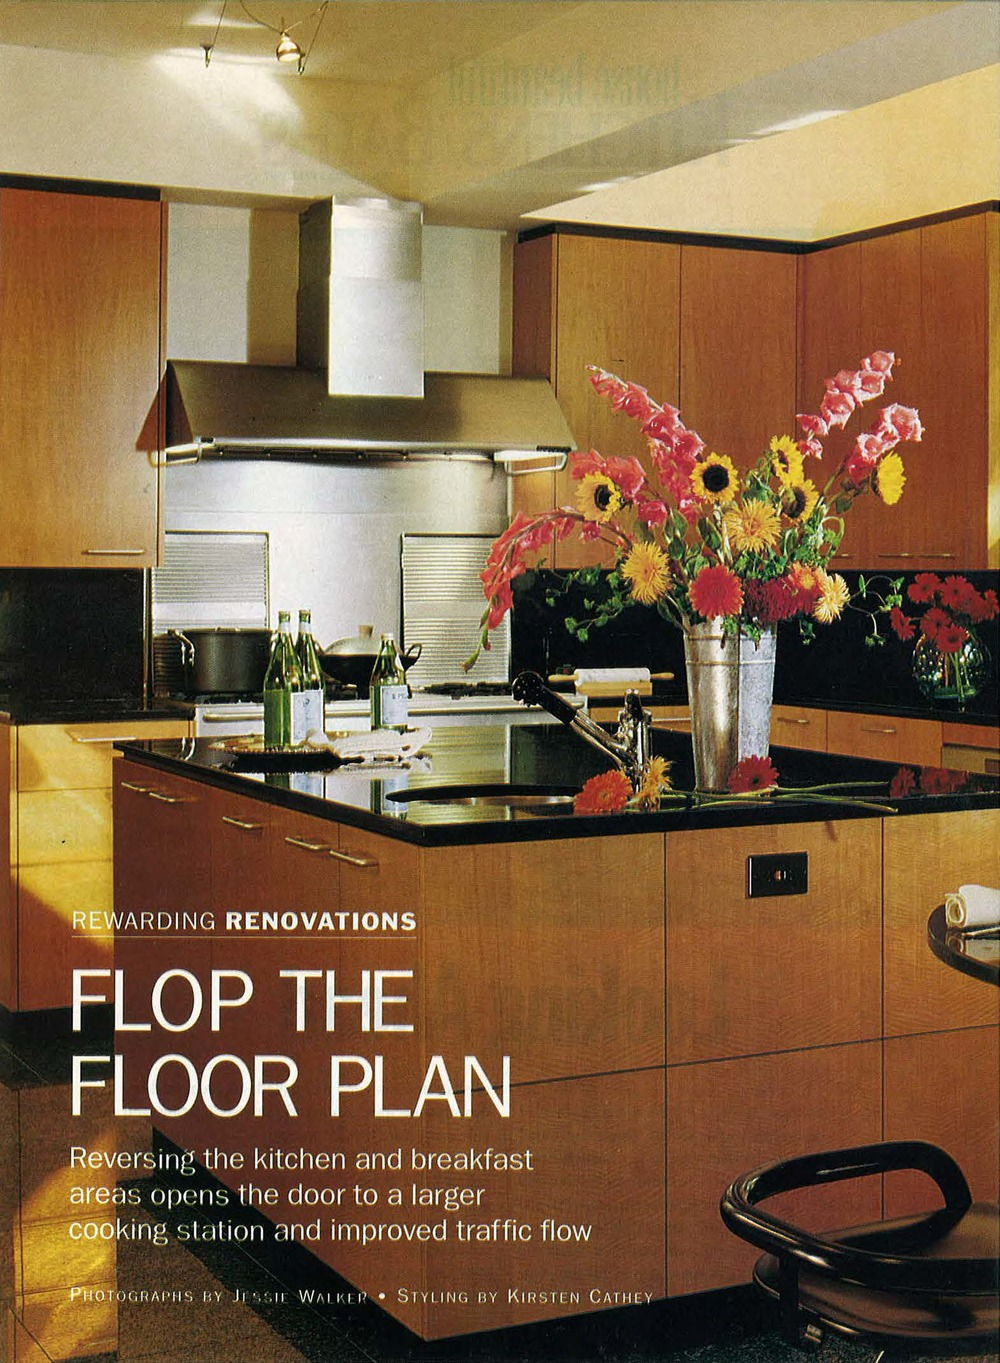 1997 House Beautiful Kitchens & Baths _Page_2.jpg